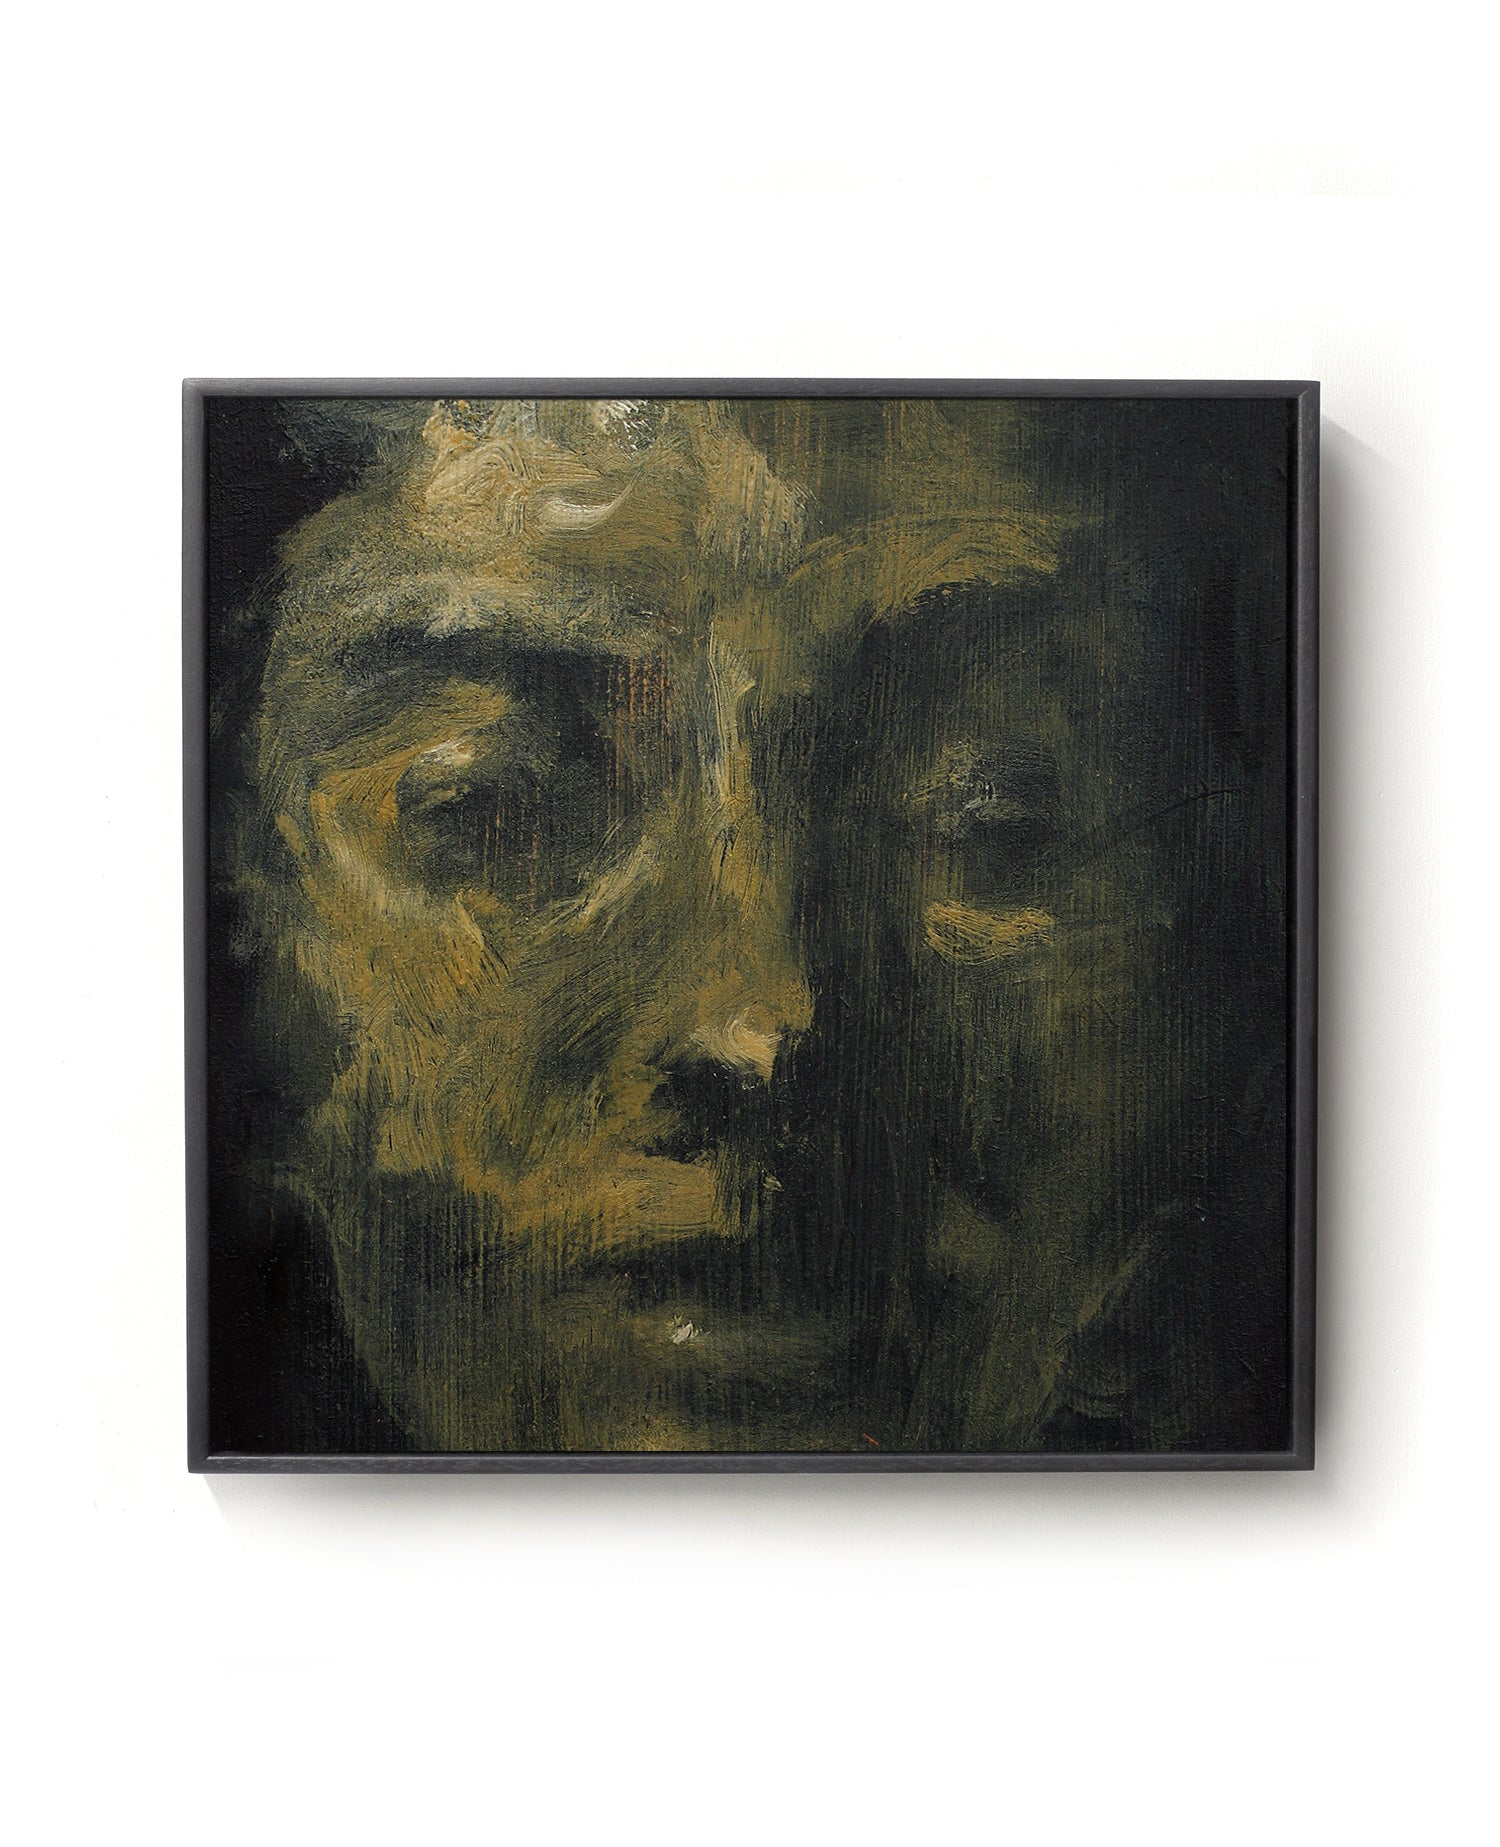 Oil painting on canvas of a face in black and gold tones.